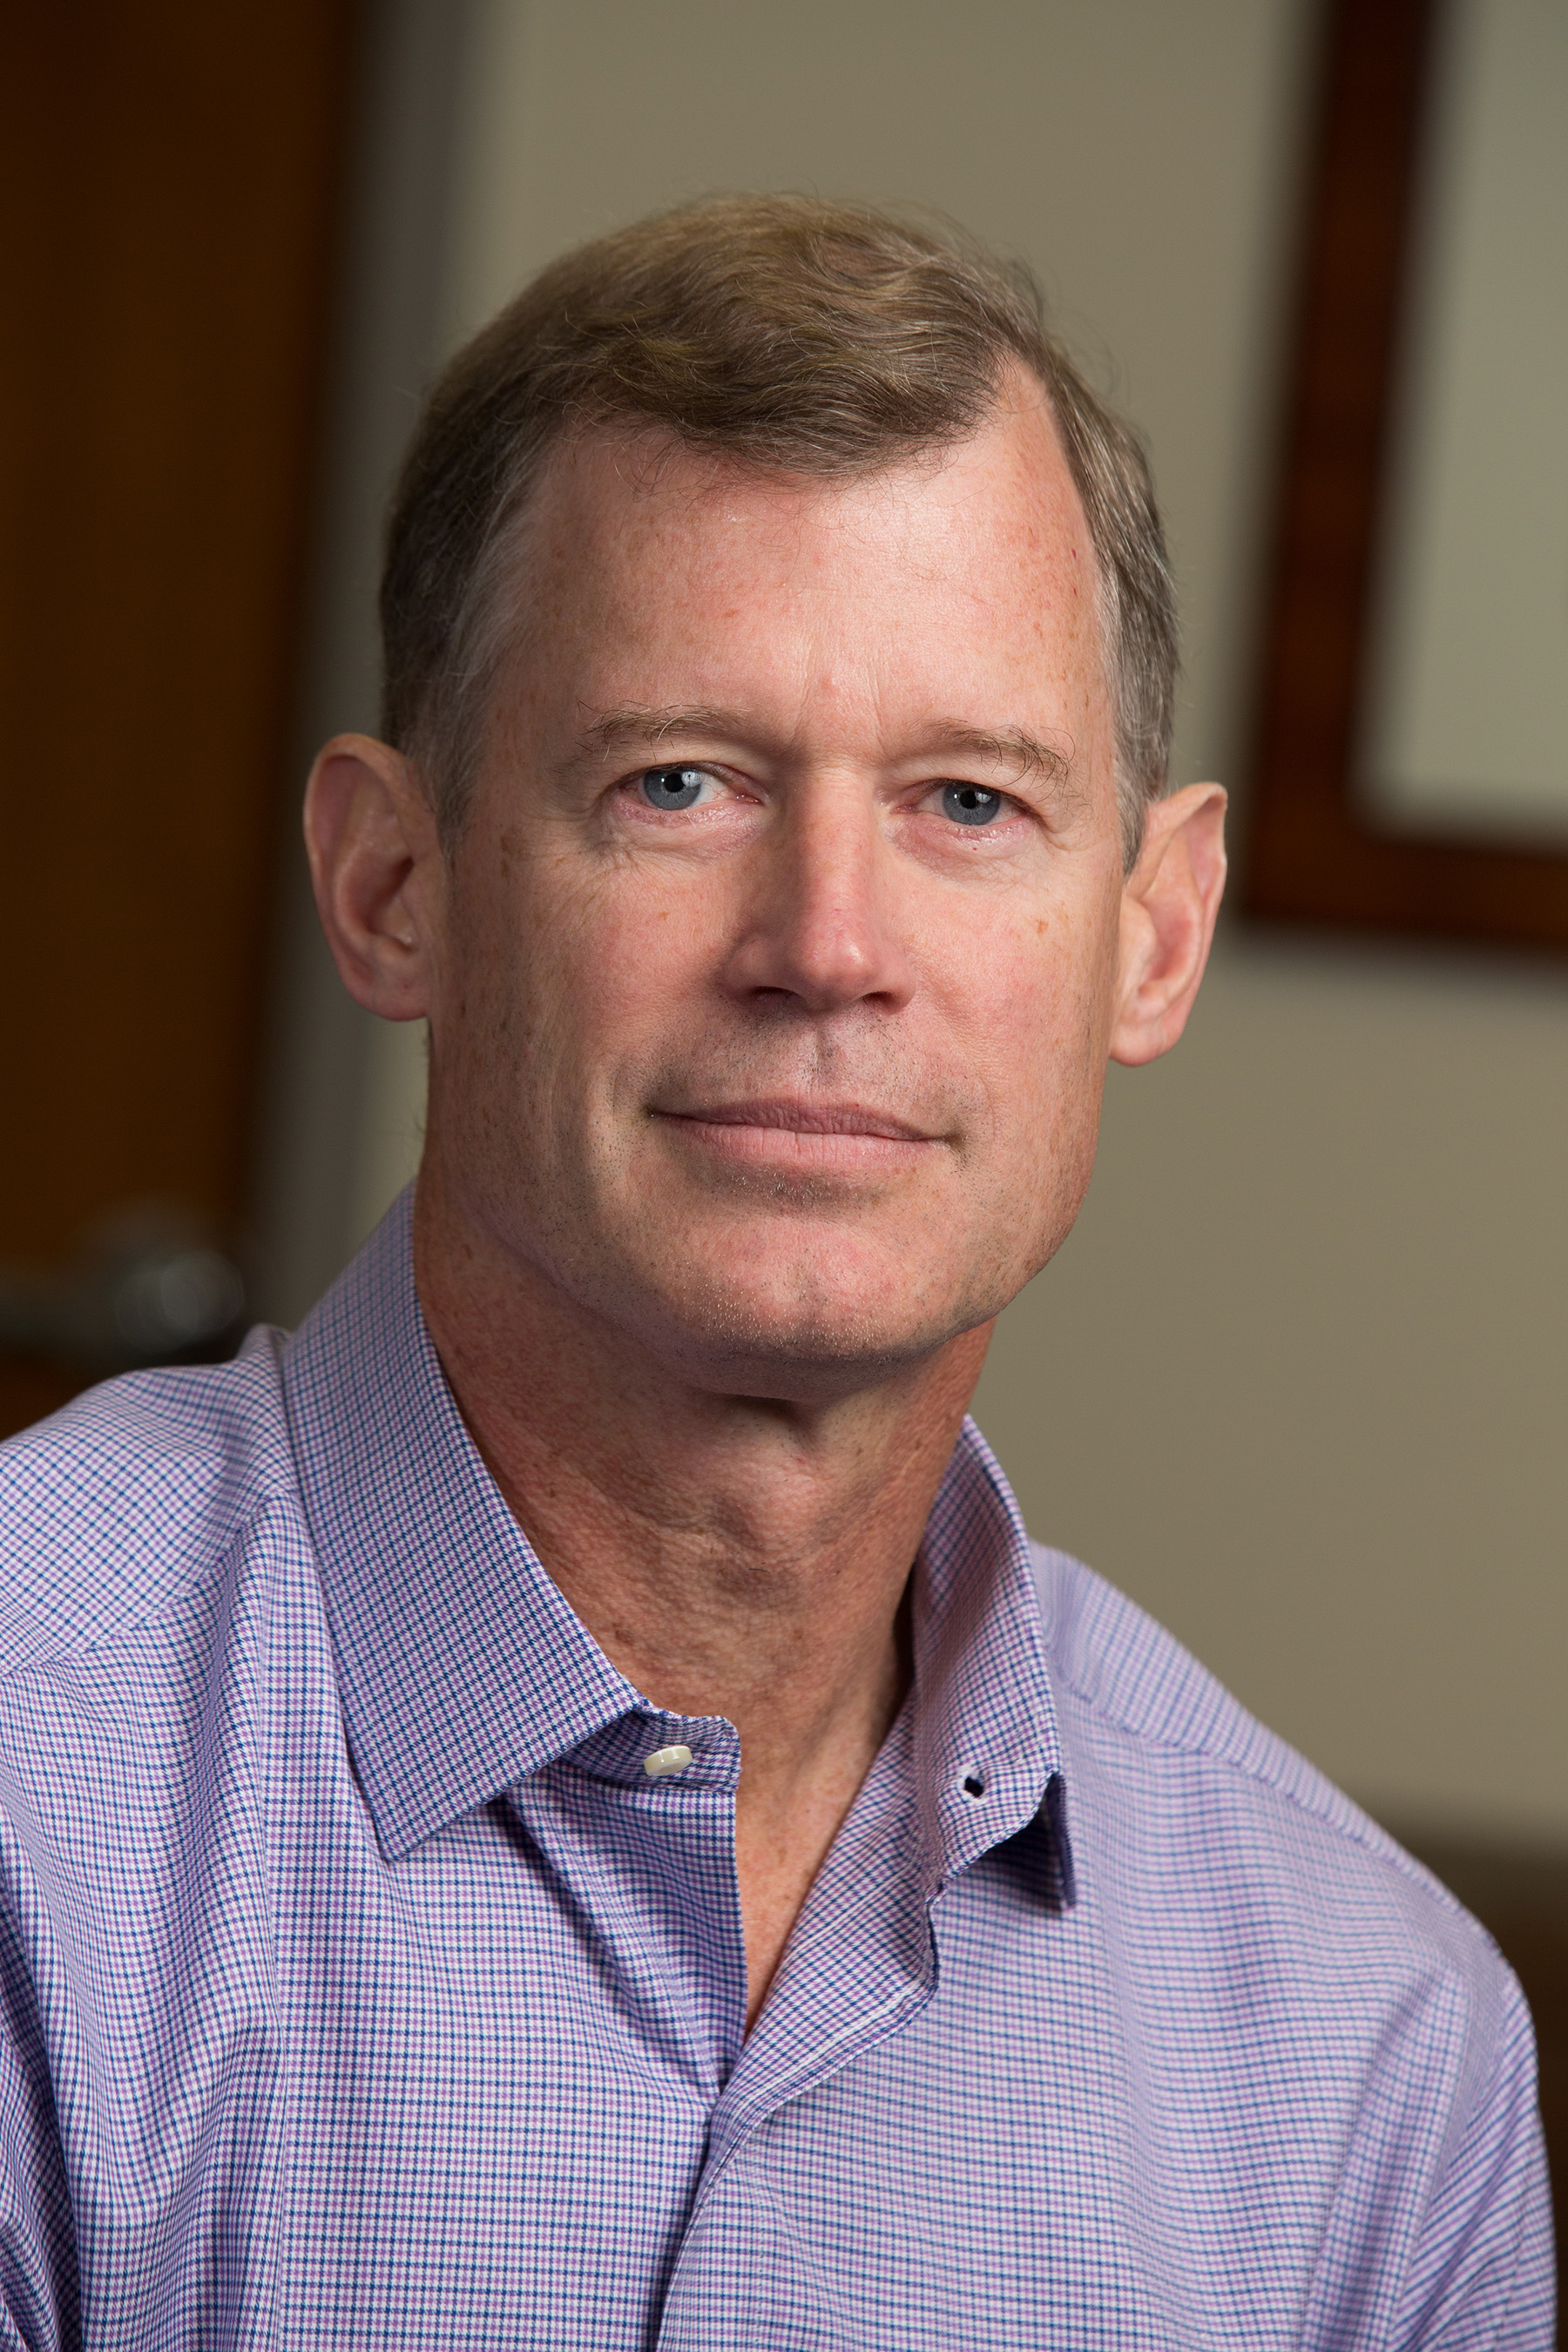 Ted Patton, founder and managing partner of Hastings Equity Partners